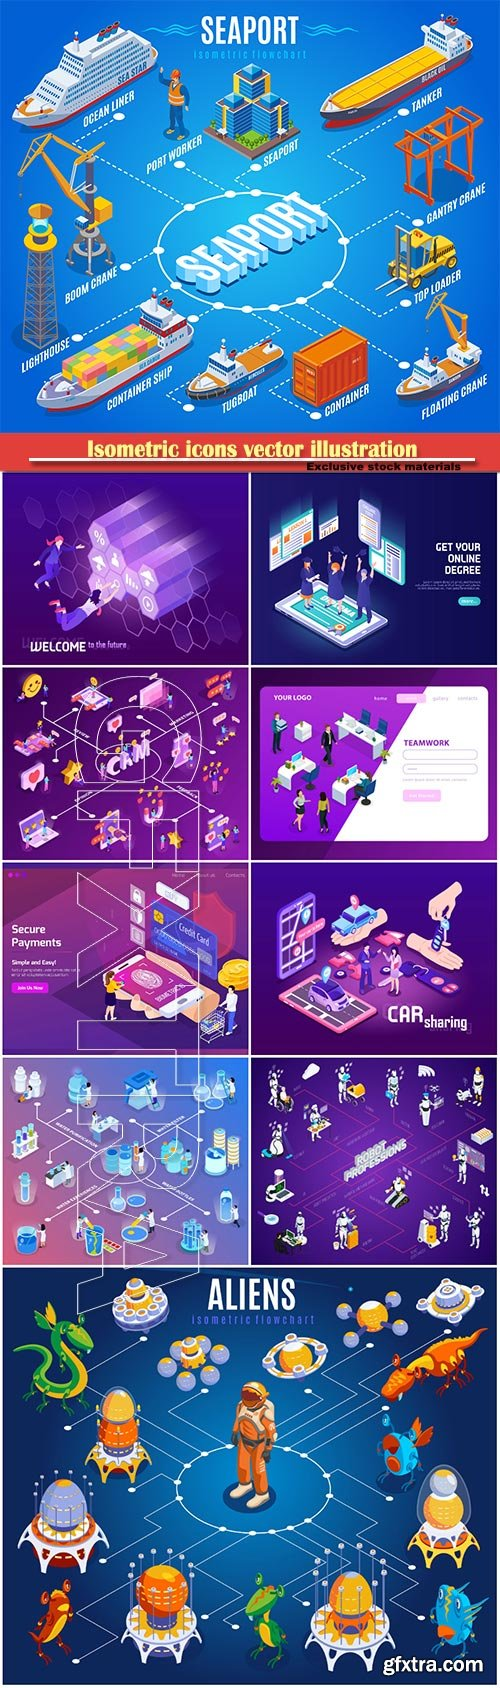 Isometric icons vector illustration, banner design template # 24